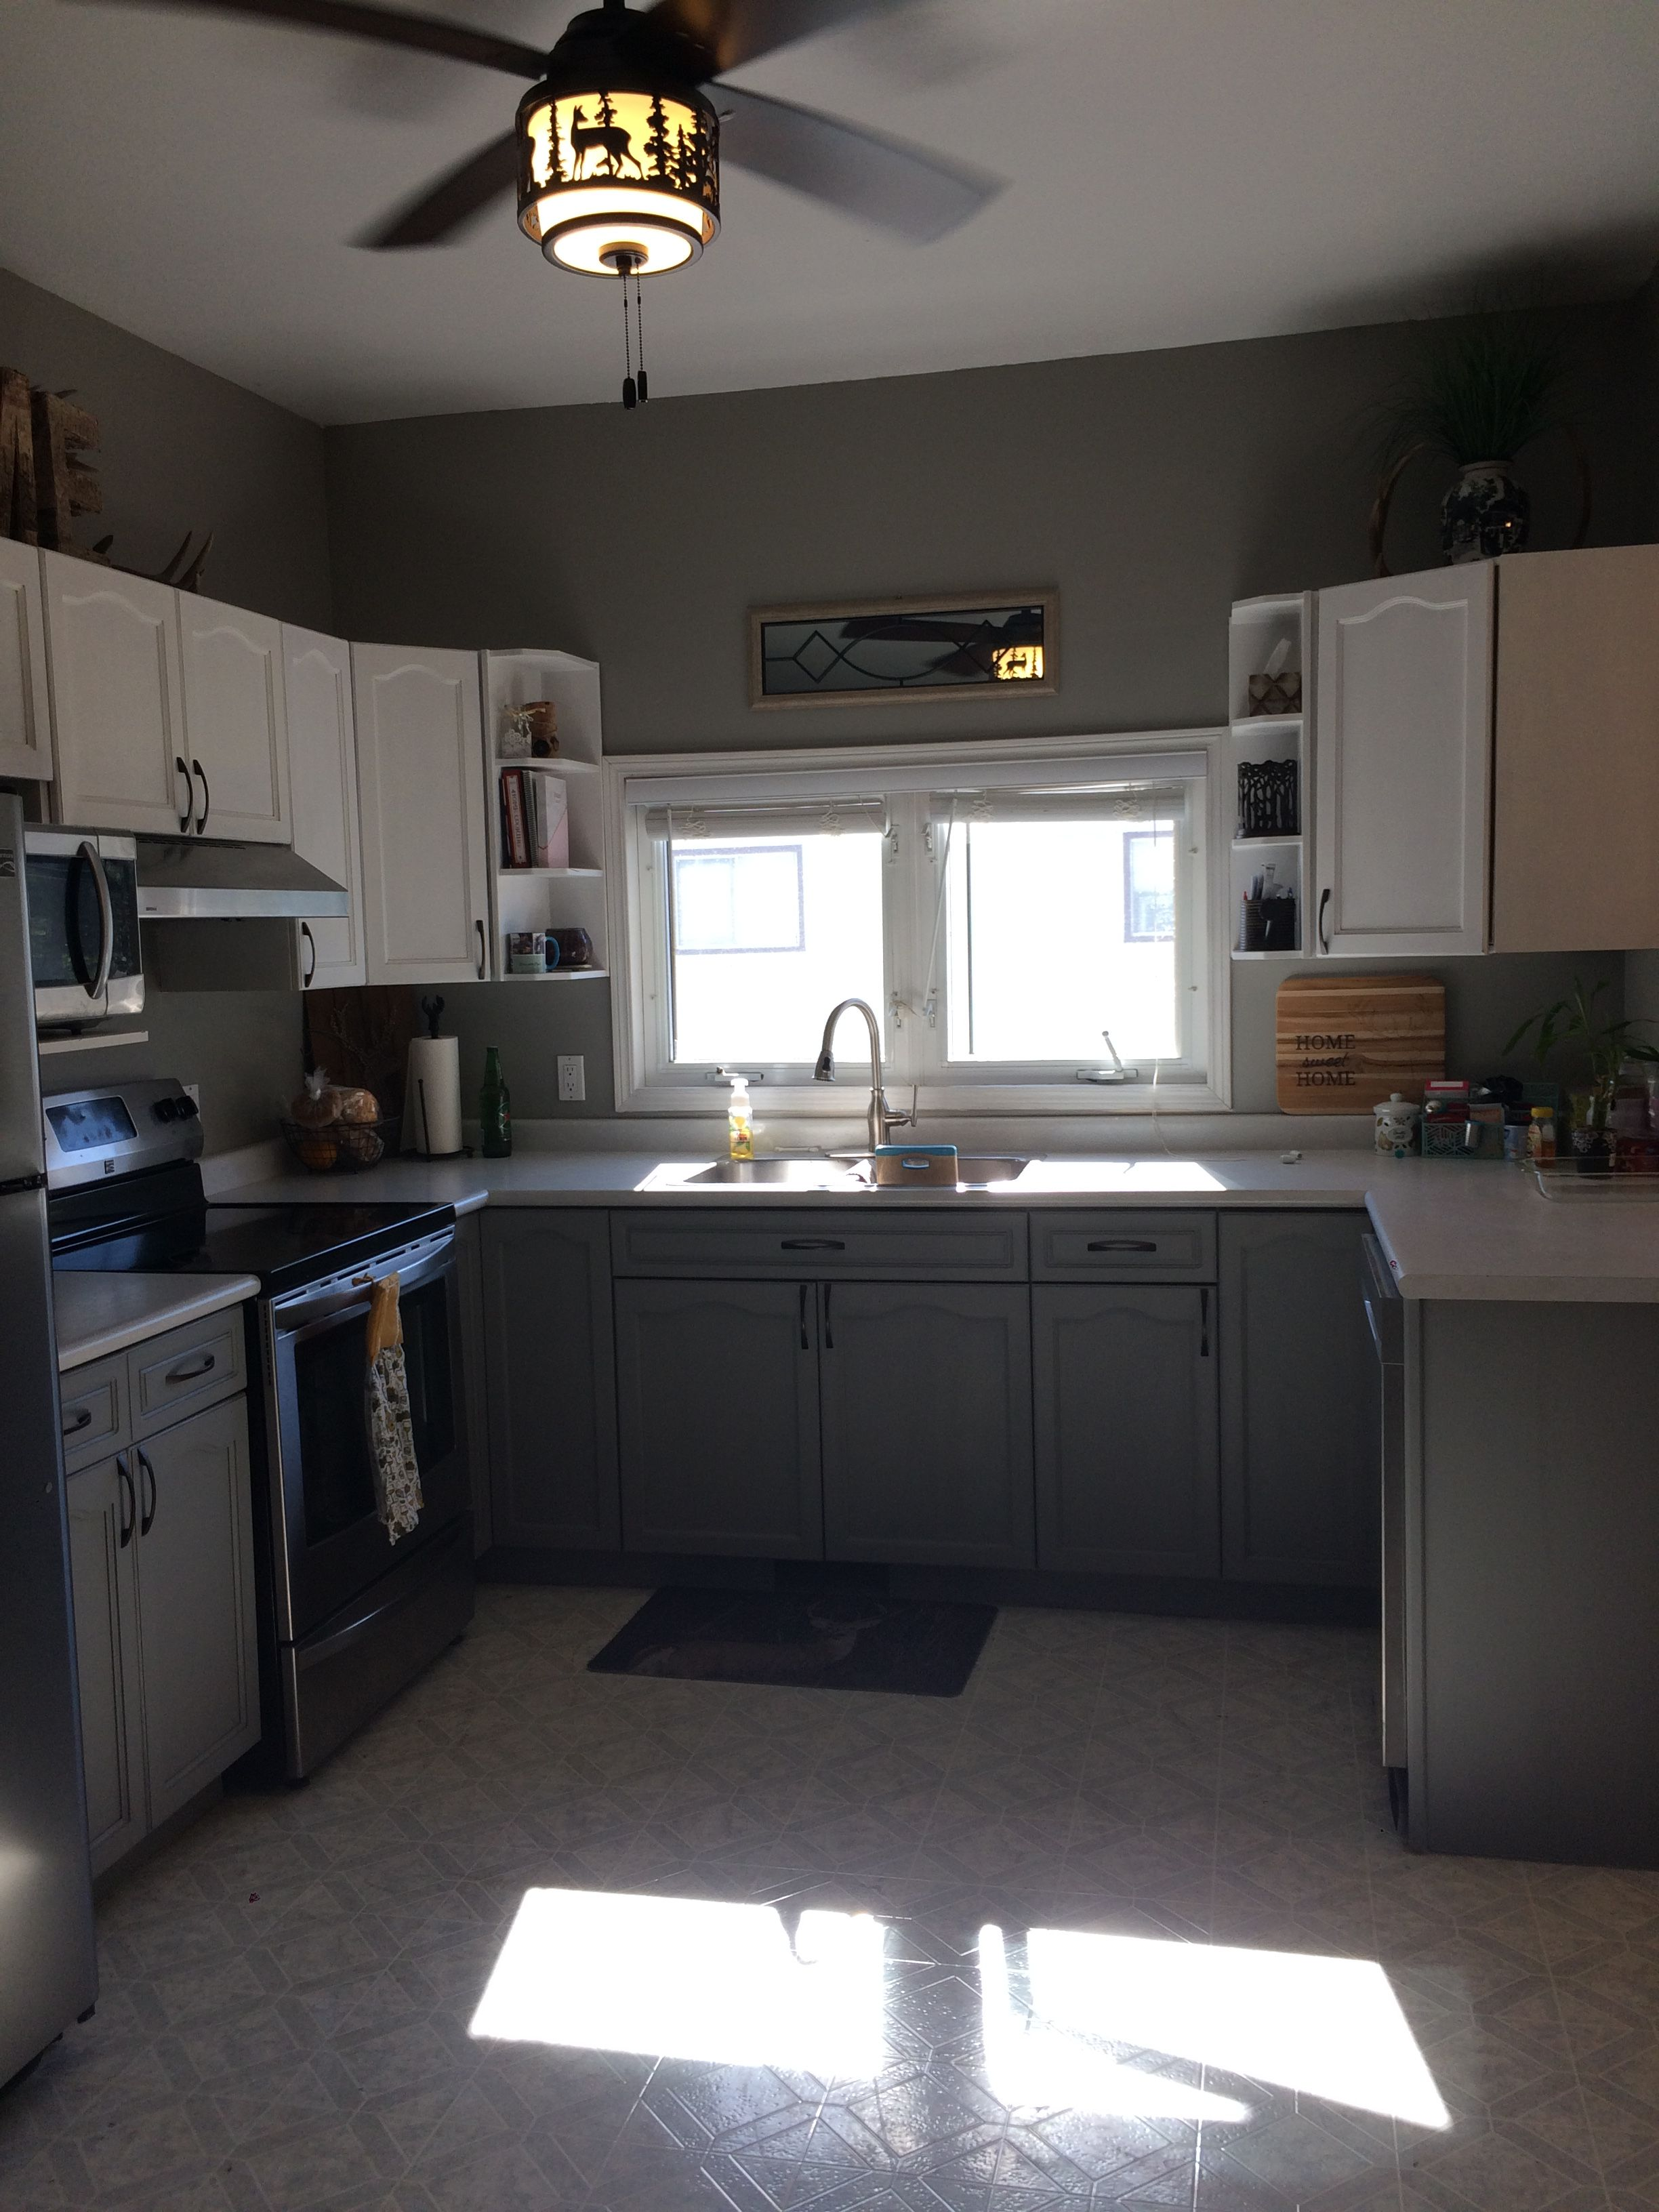 Kitchen Project 2018 Fusion Mineral Paints Casement On Top And Little Lamb On Bottom Kitchen Paint Kitchen Mineral Paint